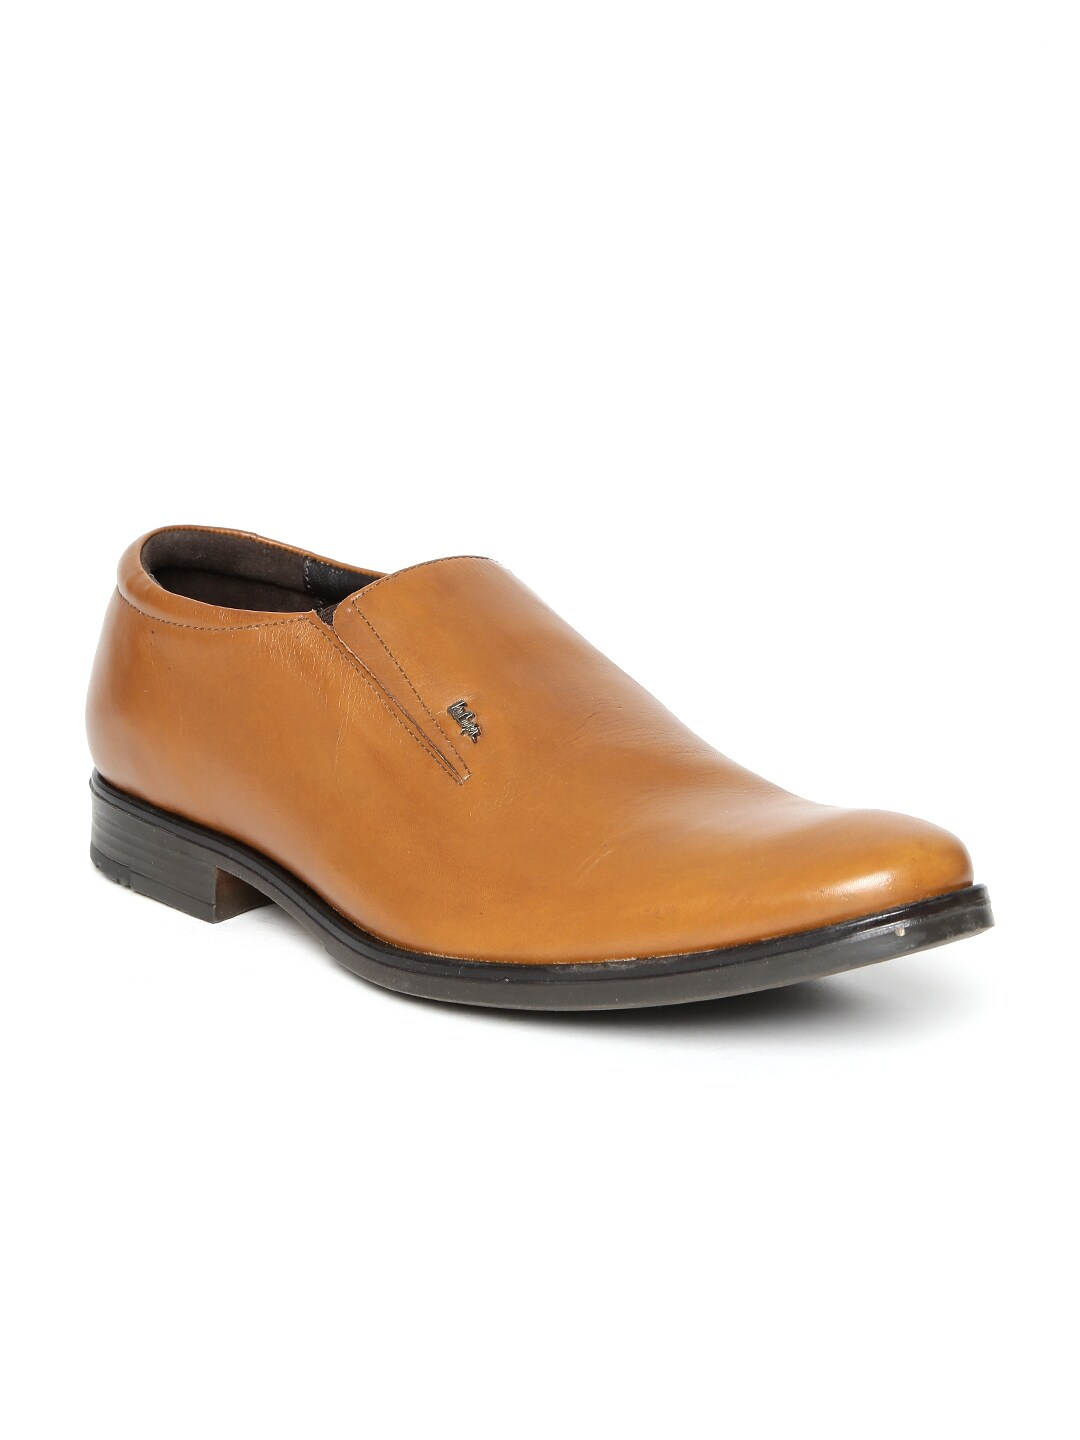 aca91a2a6 Lee Cooper Formal Shoes Sweaters - Buy Lee Cooper Formal Shoes Sweaters online  in India